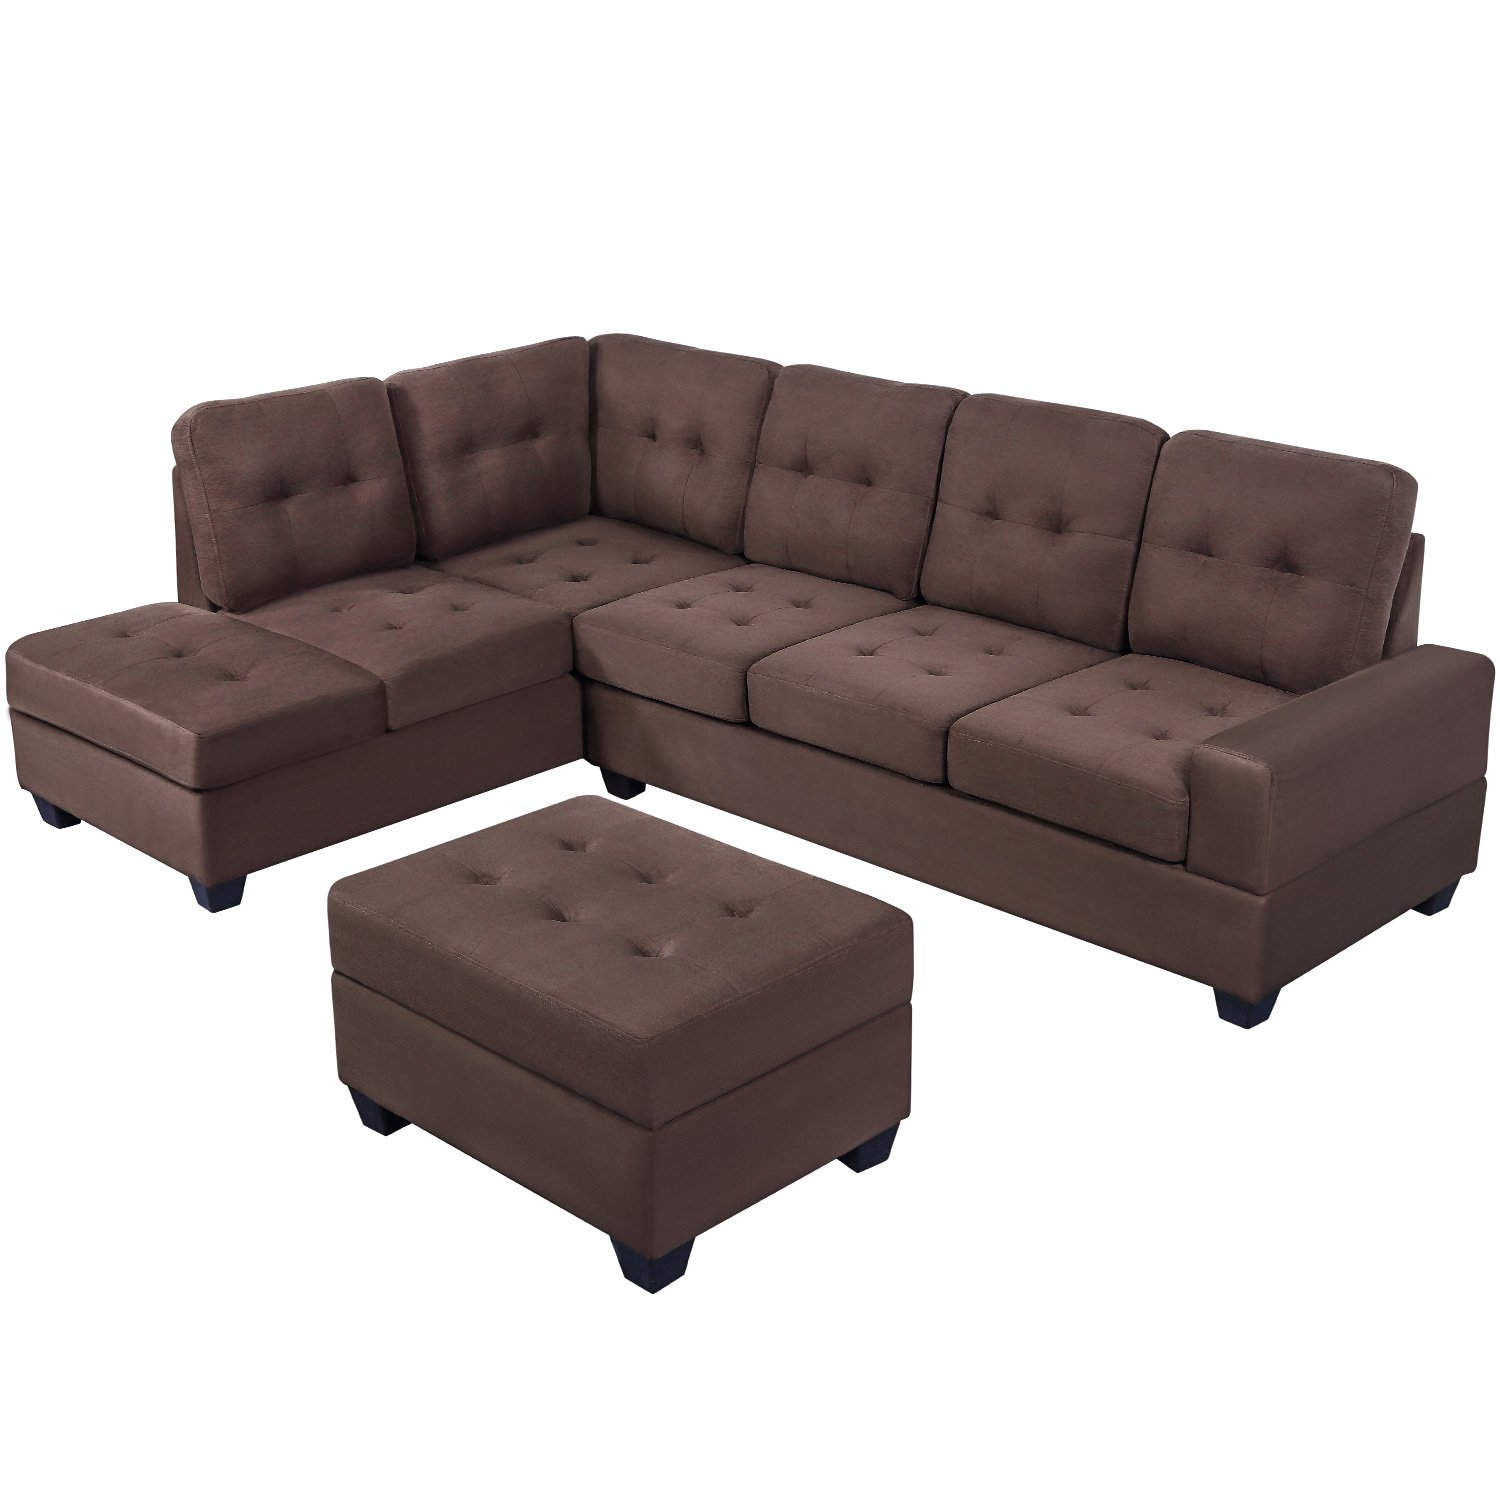 Harper & Bright Designs 3 Piece Sectional Sofa Microfiber with Reversible Chaise Lounge Storage Ottoman and Cup Holders (Brown) by Harper & Bright Designs (Image #3)